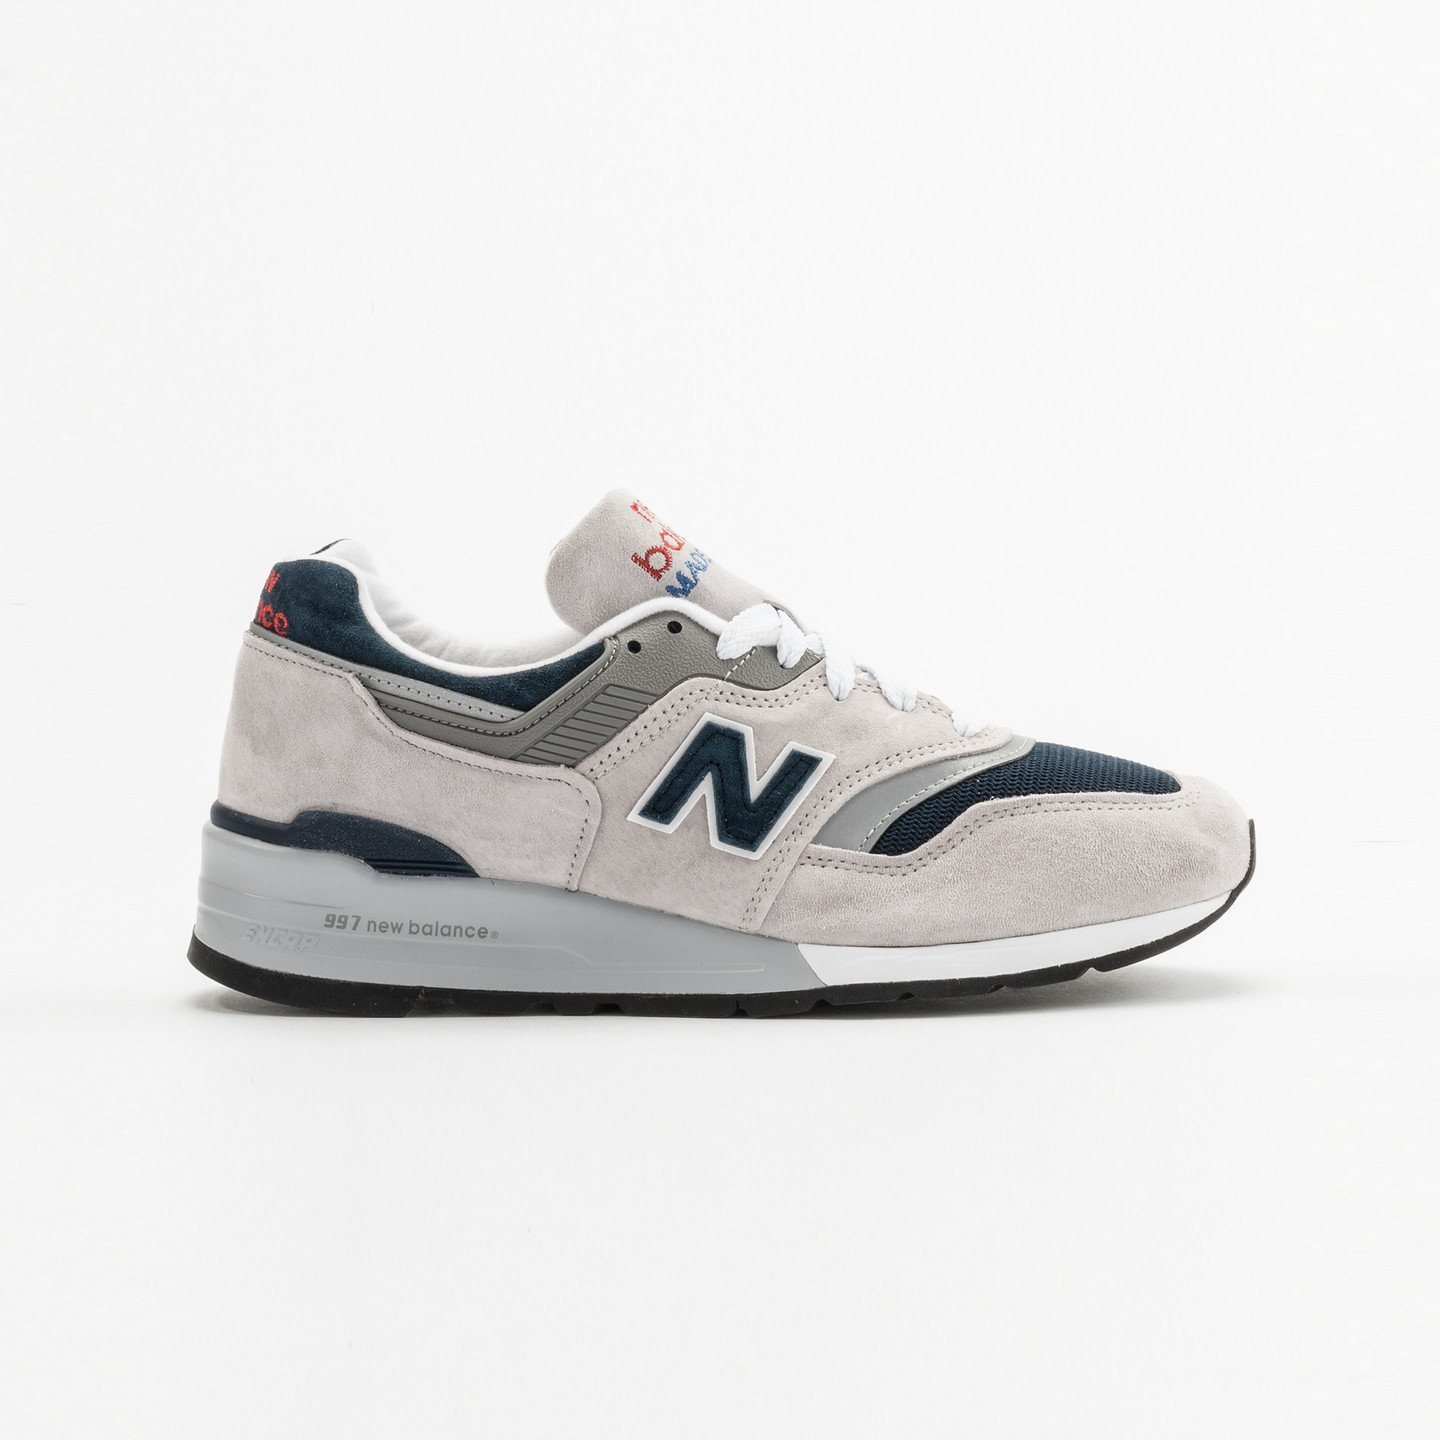 New Balance M997 - Made in USA Grey / Navy M997WEB